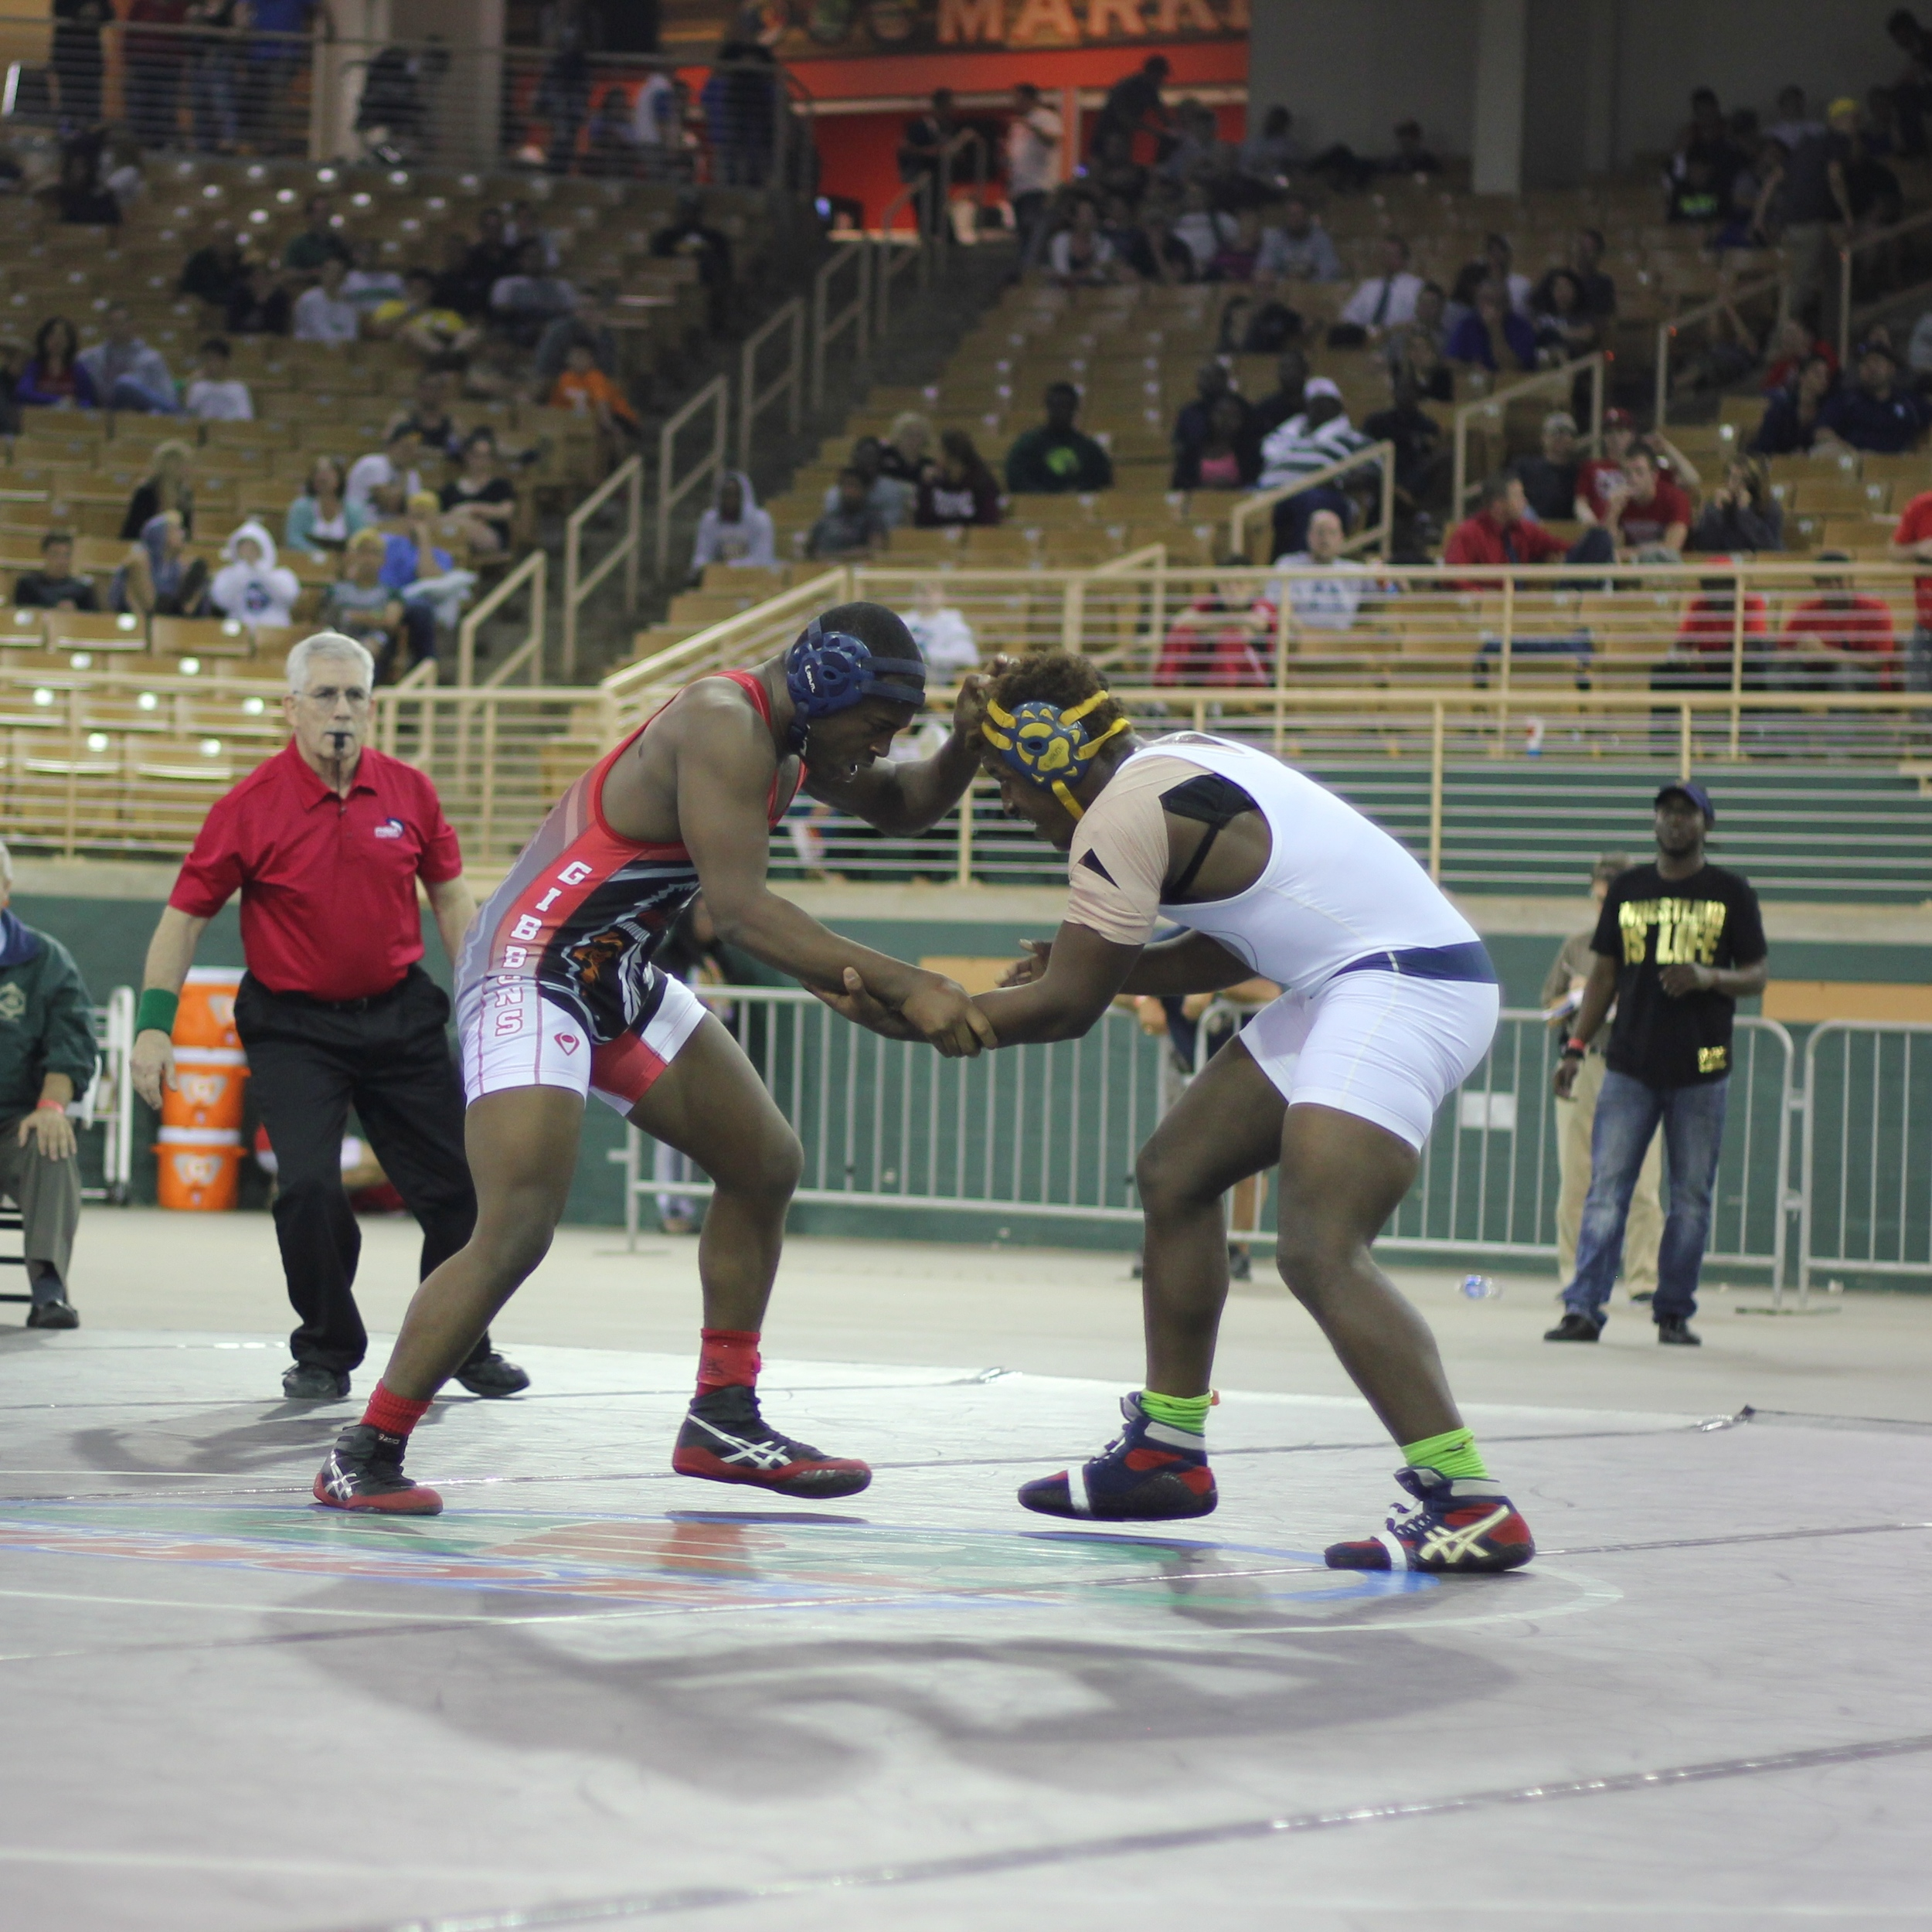 Thomas downed Bell 8-5 to win the 2015 1A 195 lb.title